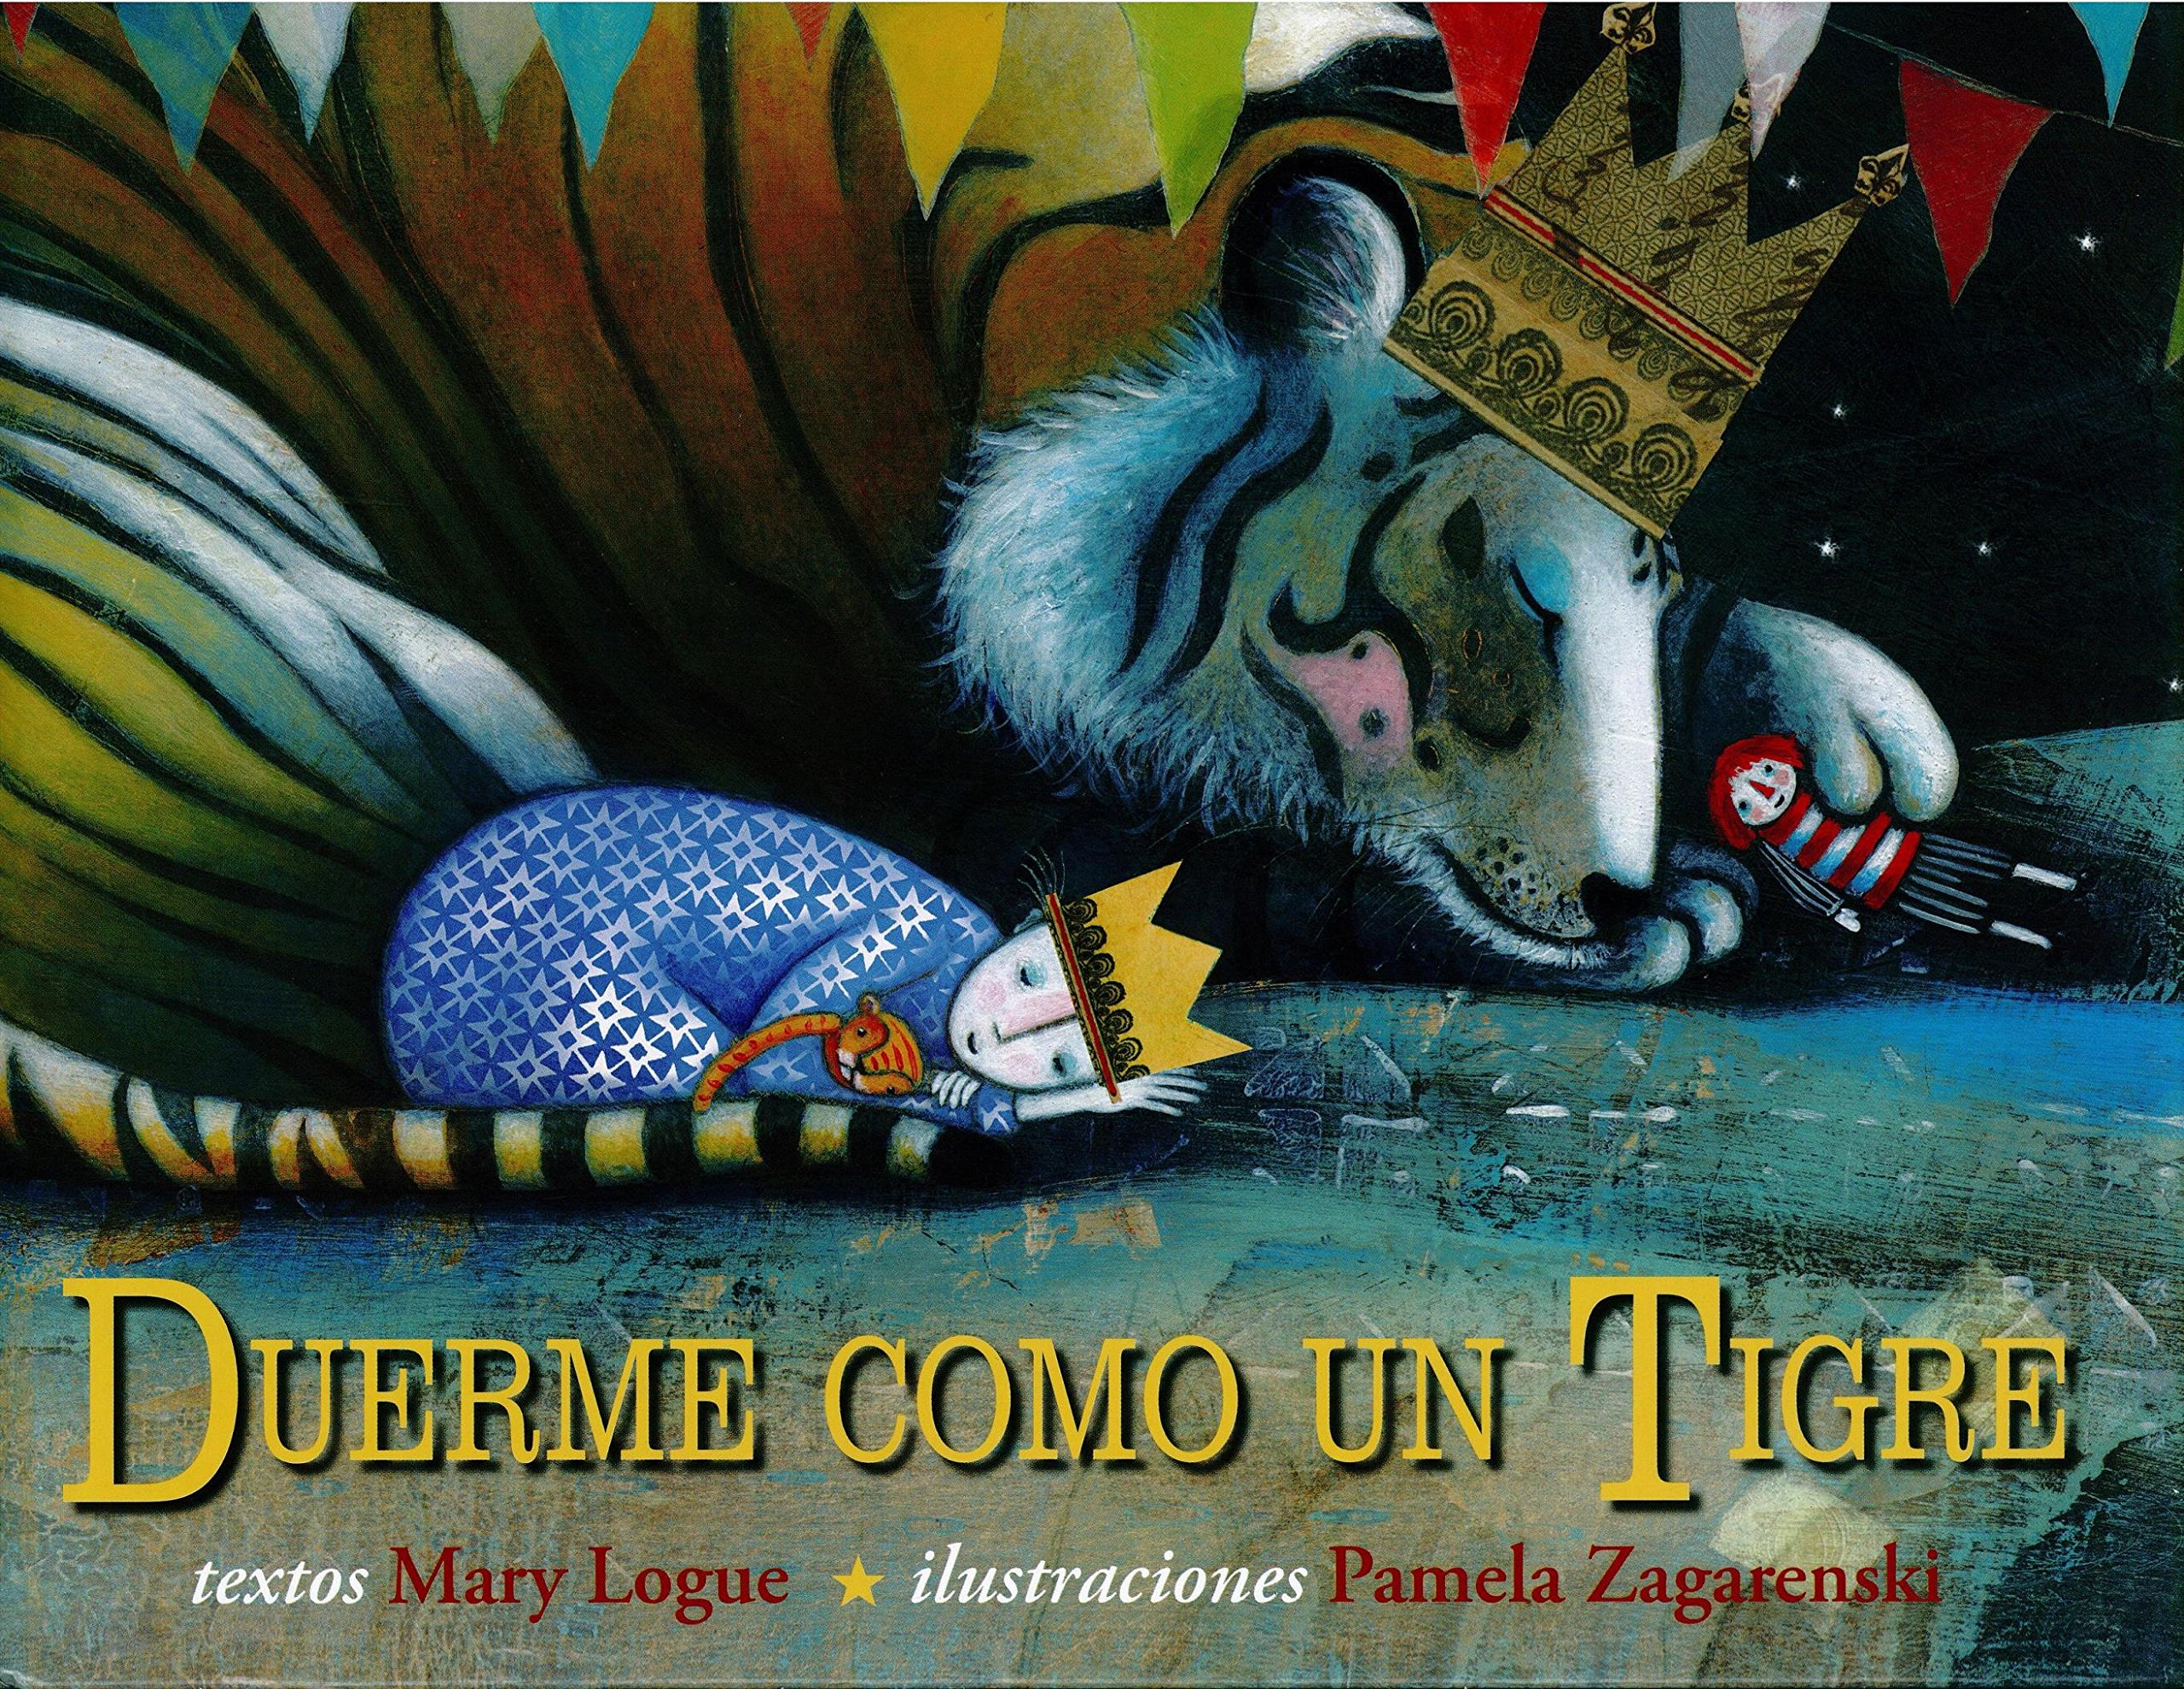 Duerme como un tigre (Spanish Edition) (Spanish) Hardcover – July 27, 2016